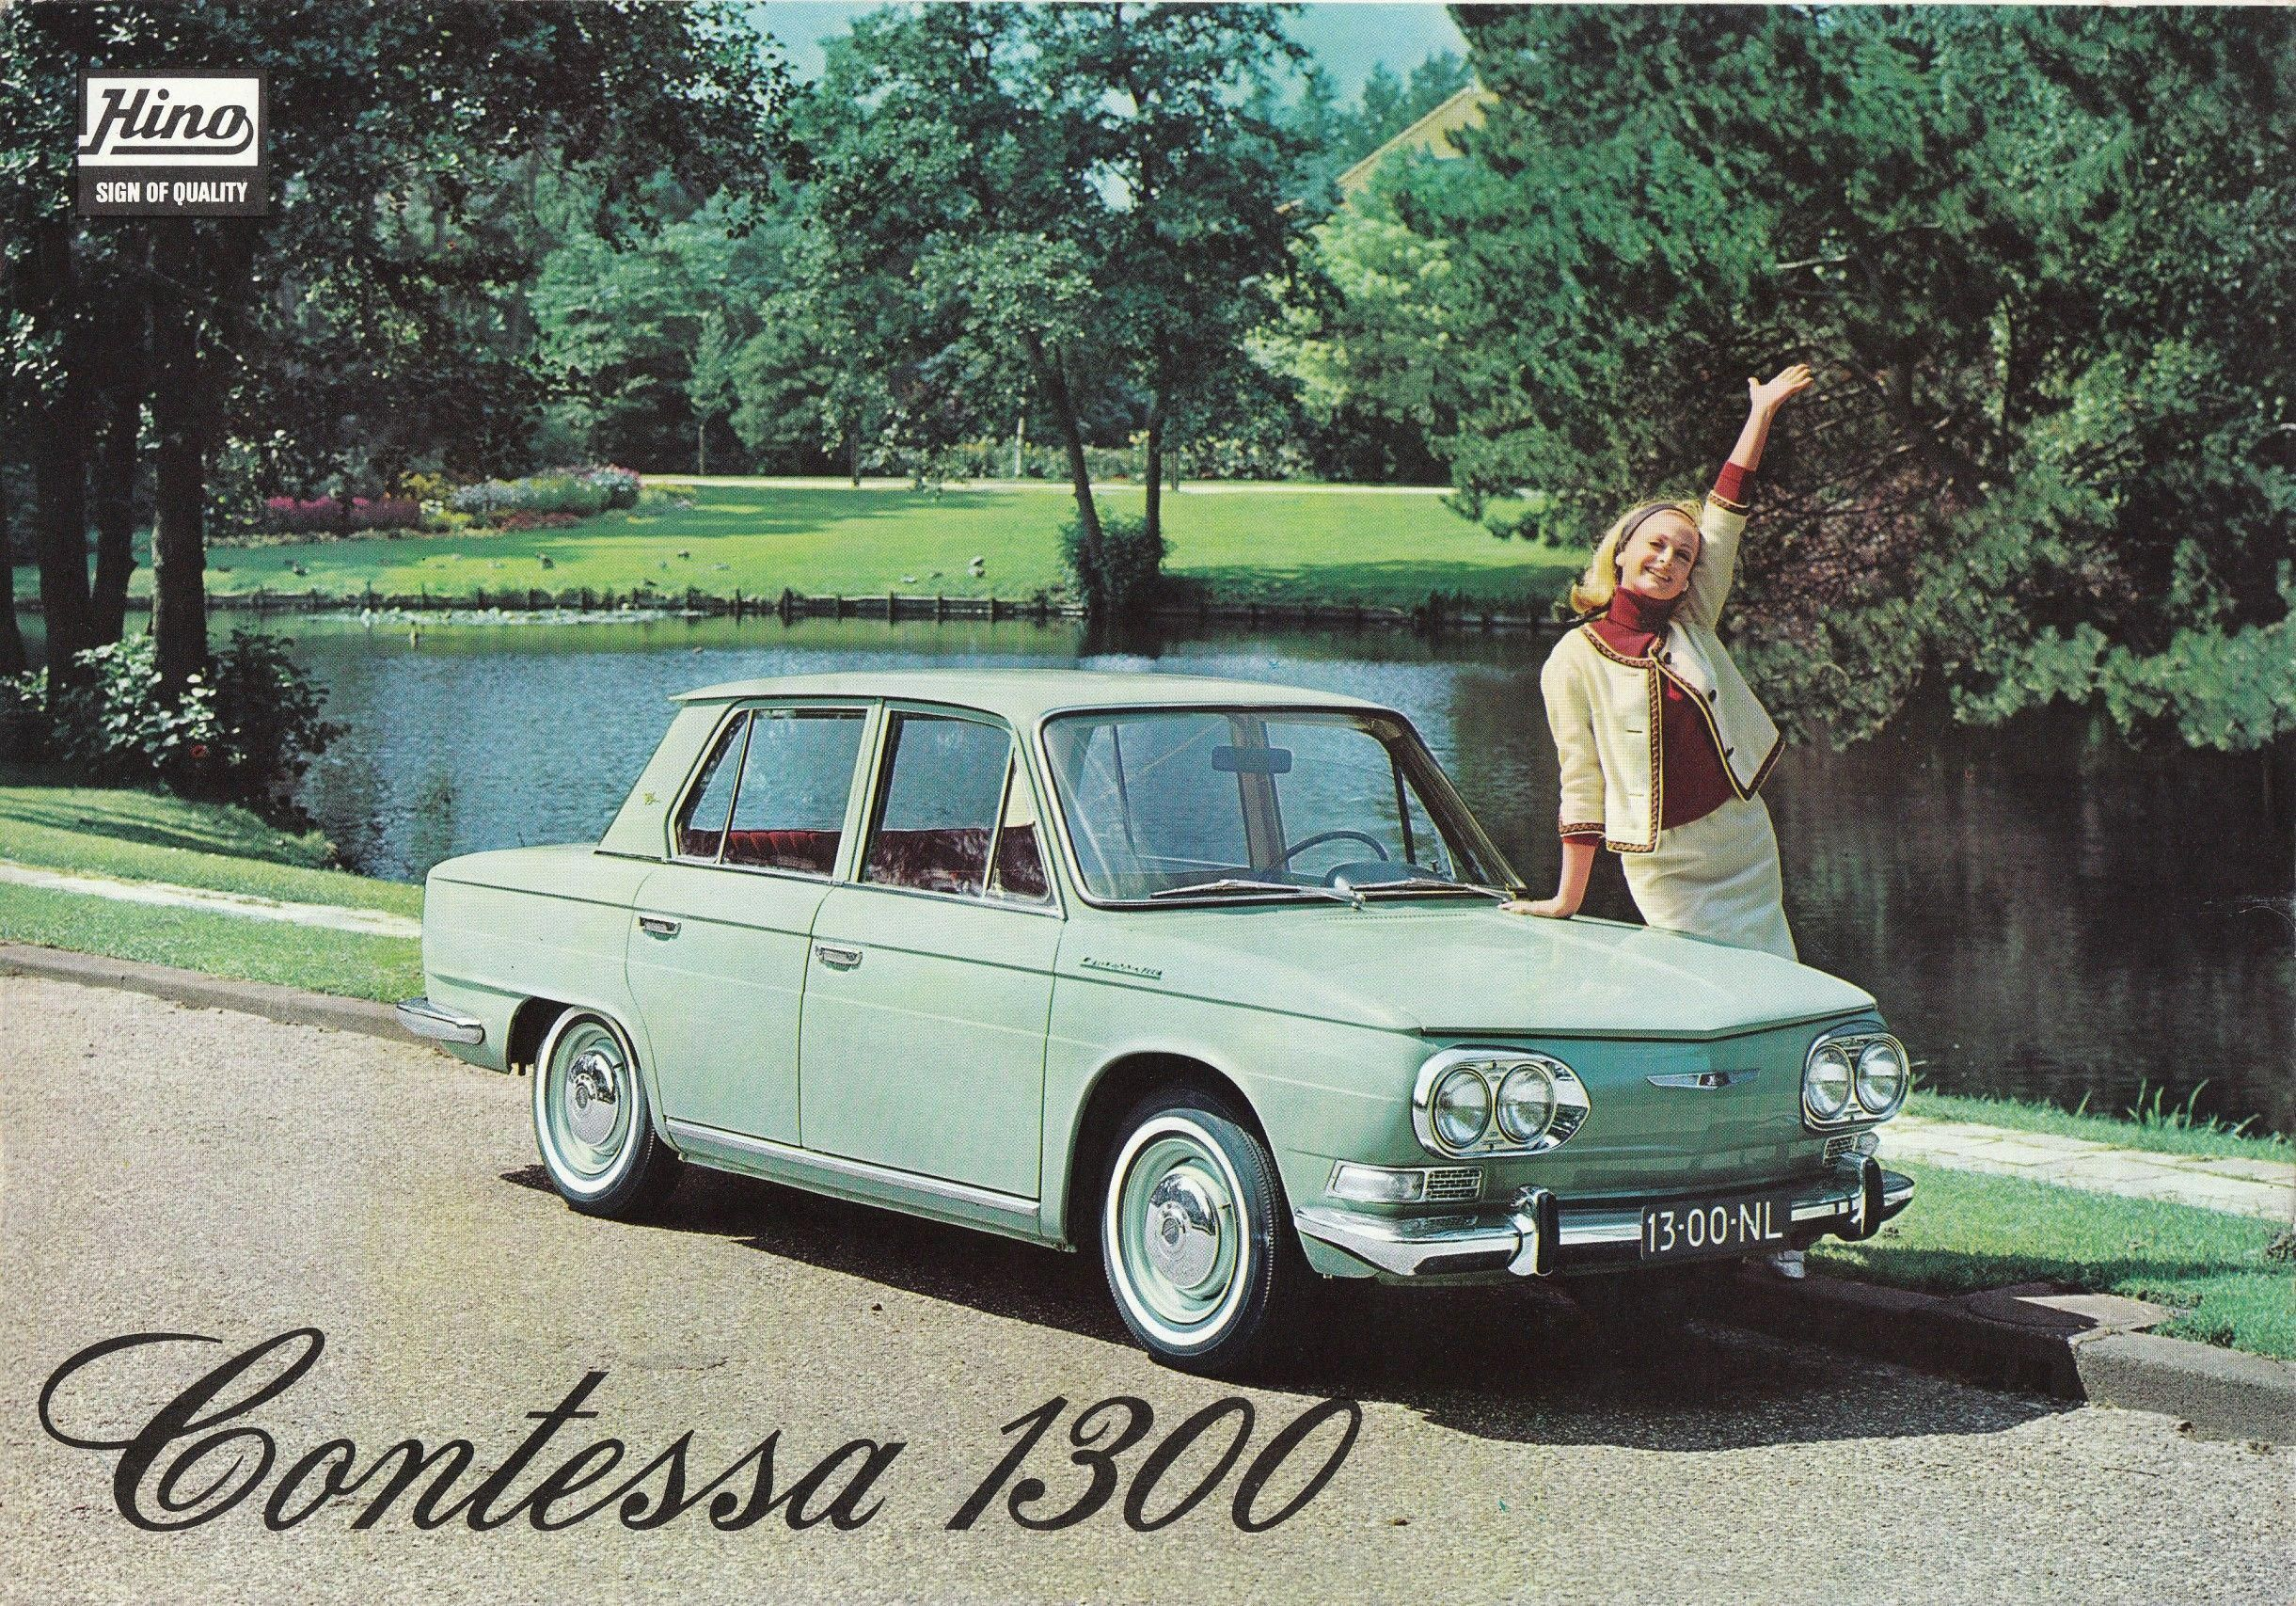 61-67 1 3L Hino Contessa  One of the 16 subsidiaries of the